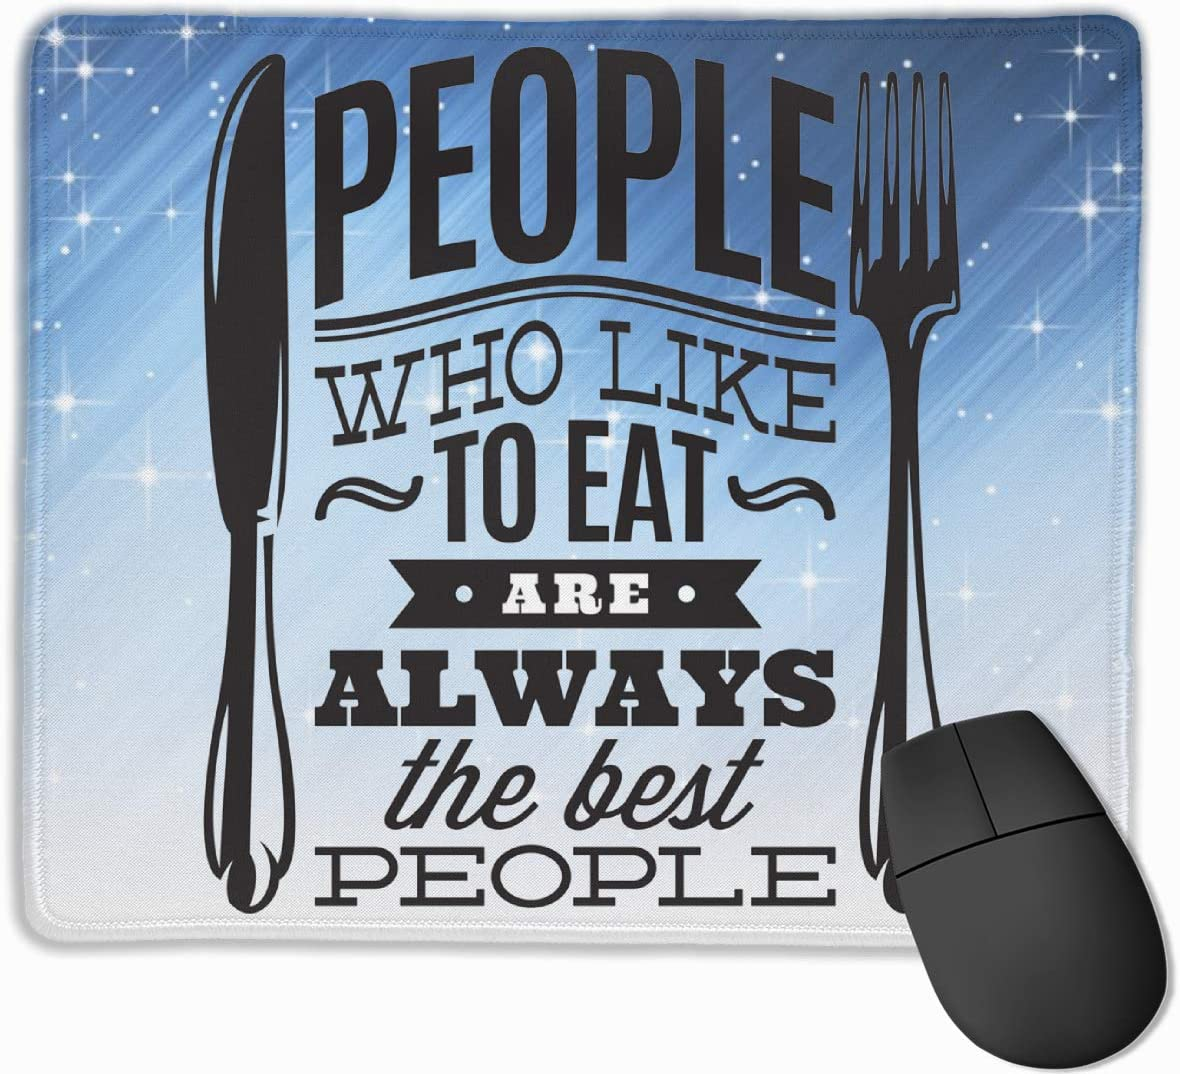 People Who Love to Eat Kitchen Rectangle Non-Slip Rubber Mousepad Gaming Mouse Pad 25X30cm